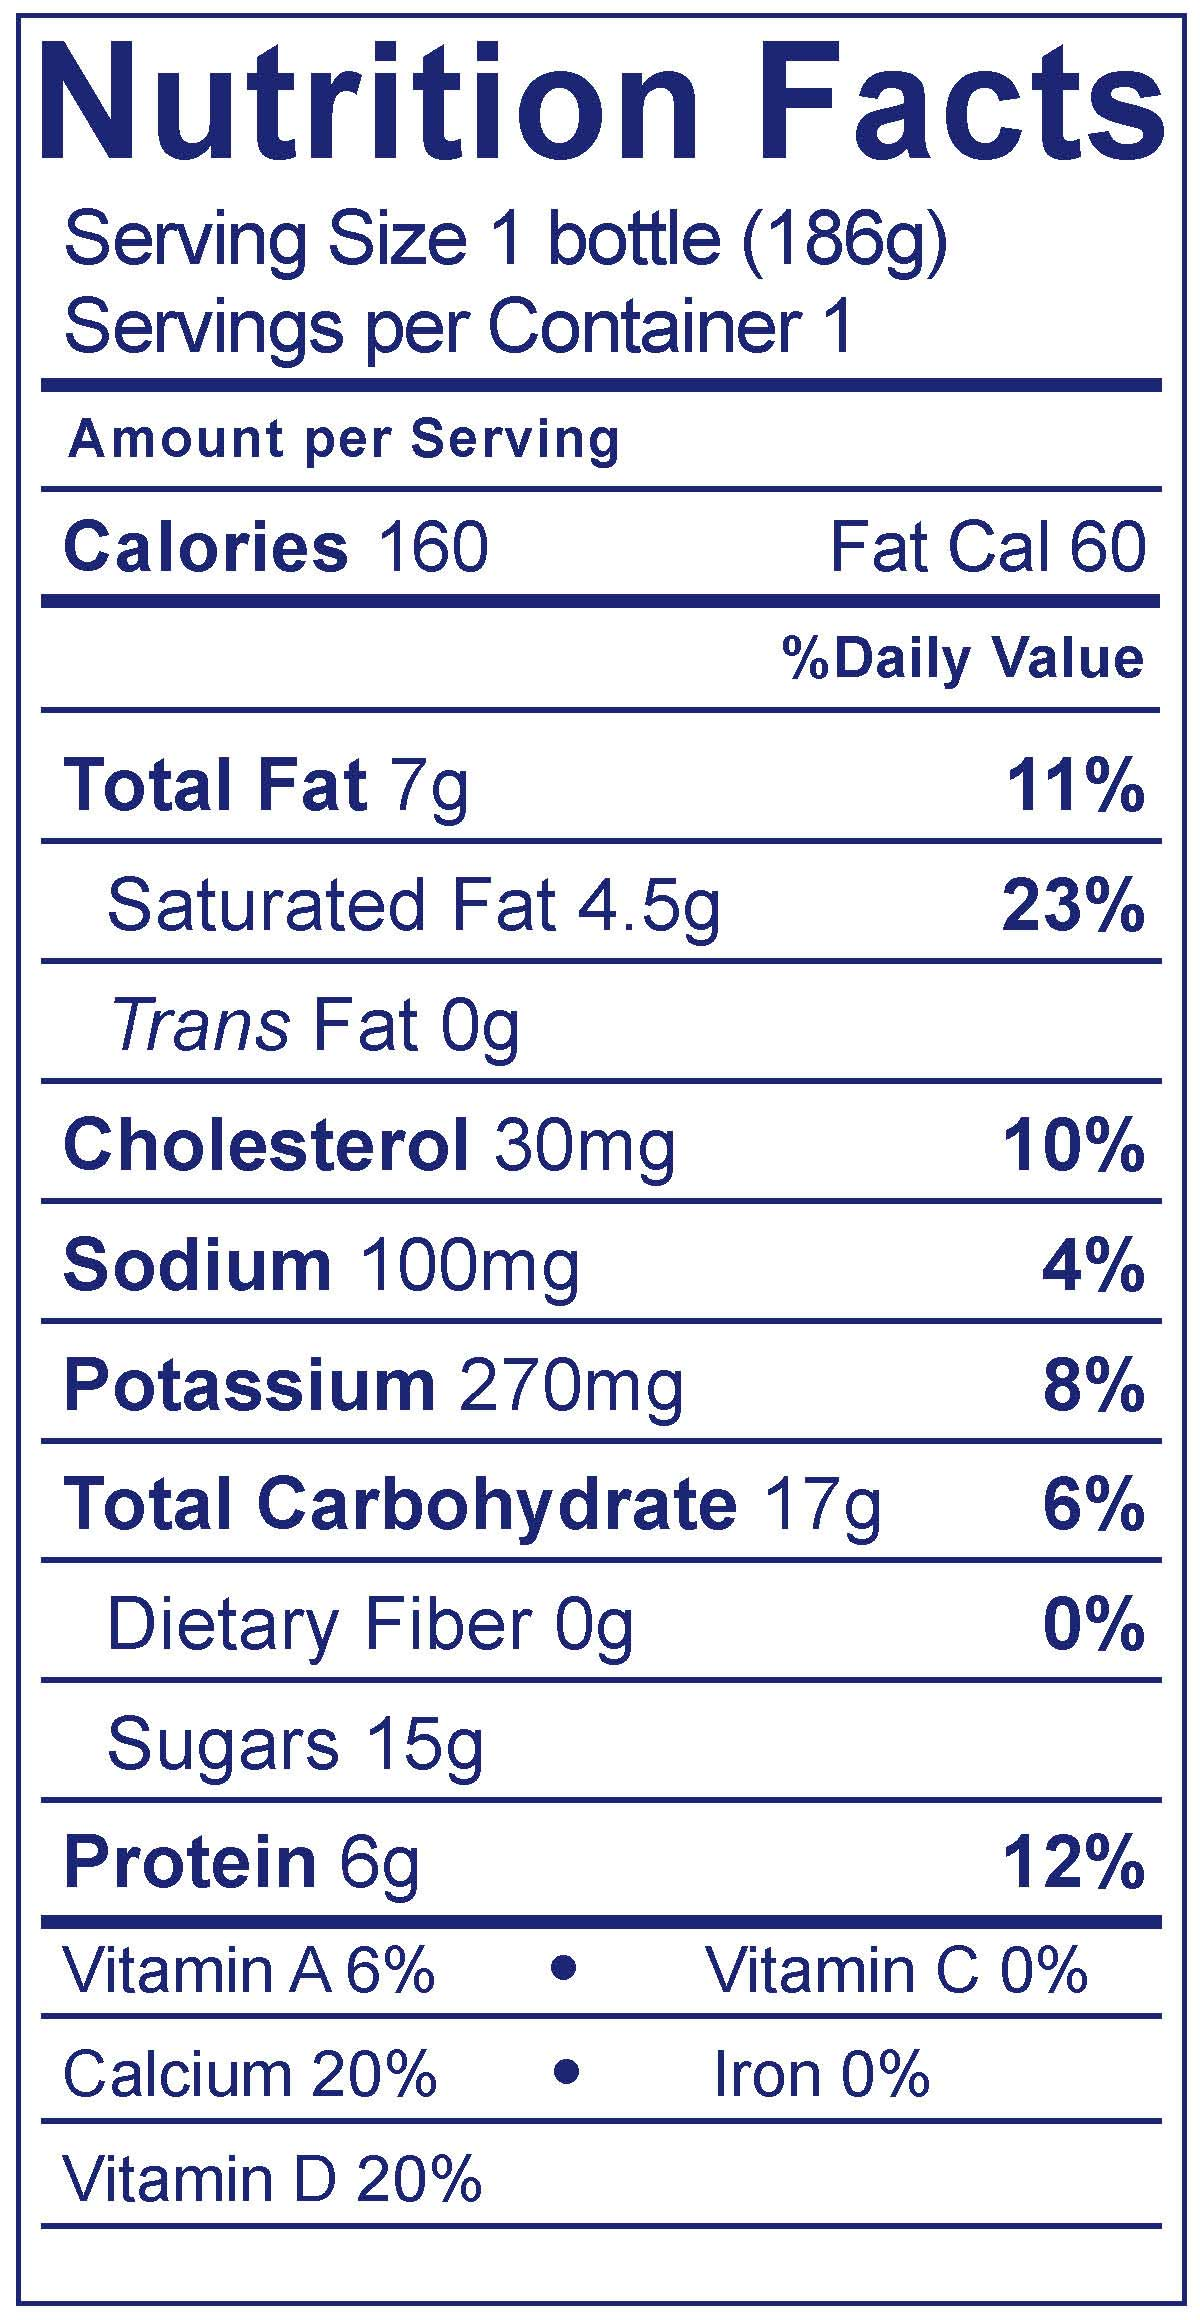 Whole Milk Strawberry Smoothie - Nutrition Facts